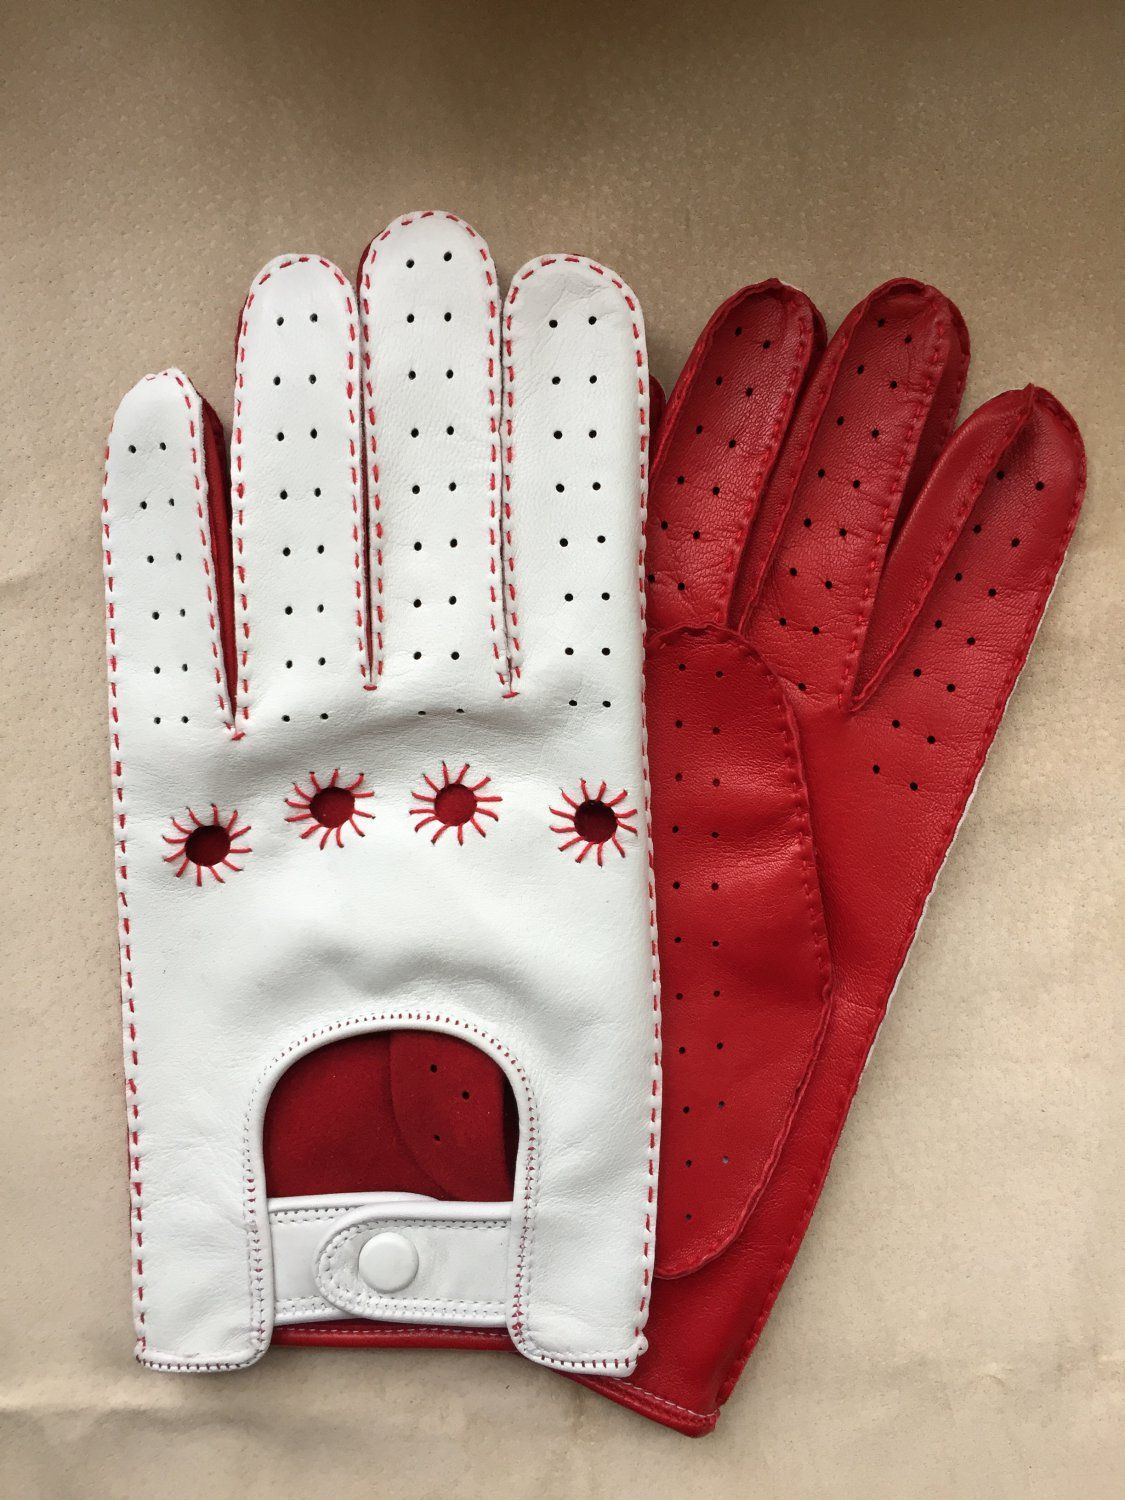 Driving Gloves For Men Italian lambskin Napa Red and White Sheep-skin leather Size 8 inches M